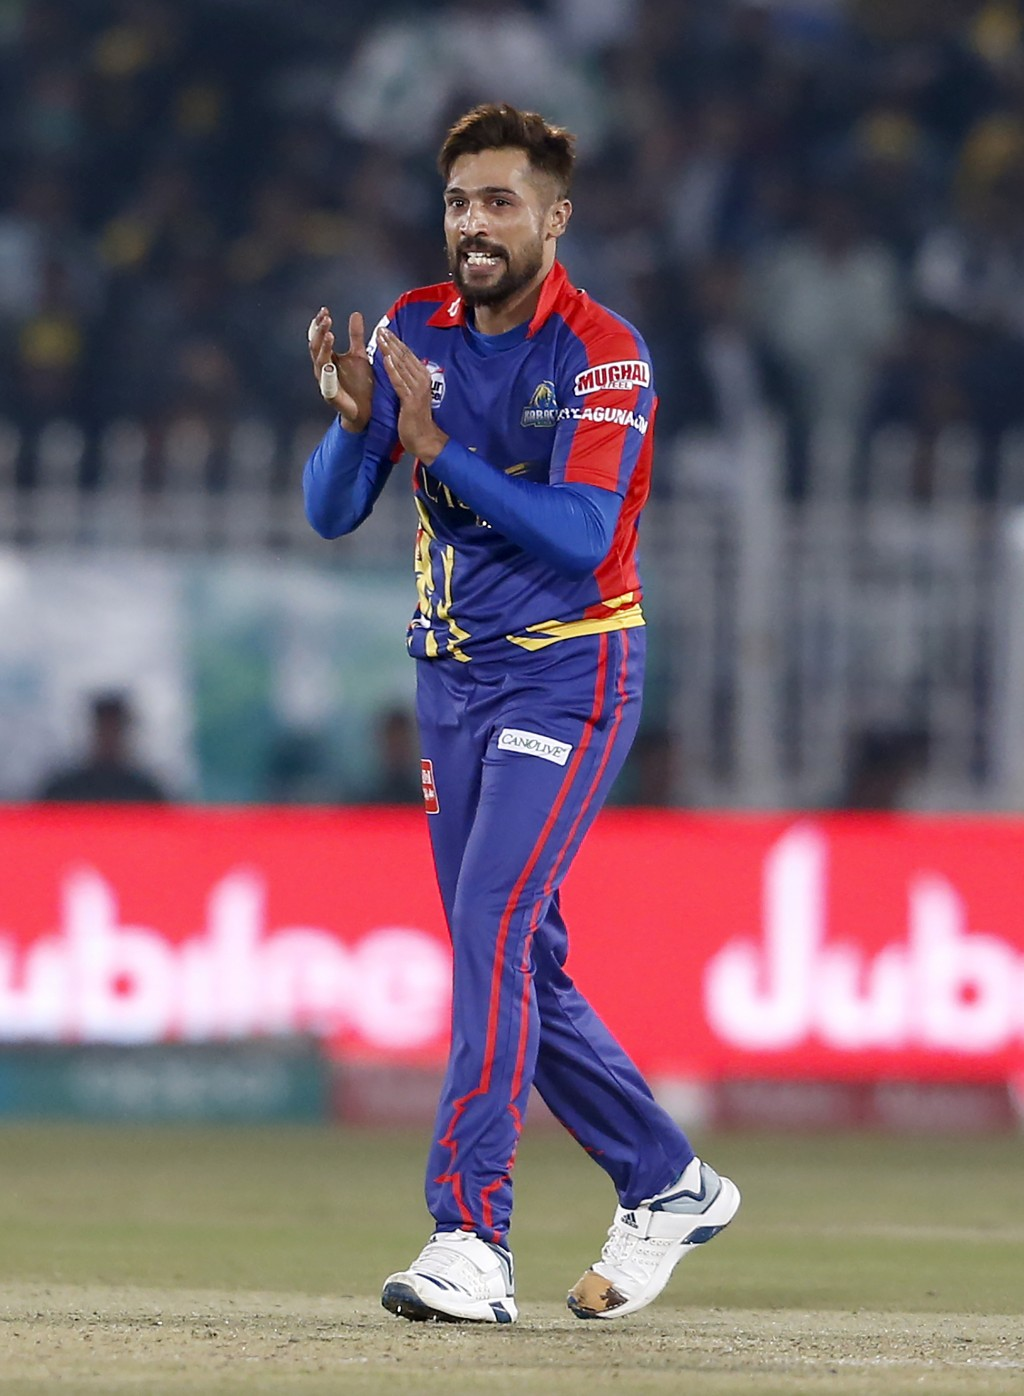 Karachi Kings pacer Mohammad Amir celebrates after taking the wicket of Peshawar Zalmi batsman Lewis Gregory during the Pakistan Super League T20 cric...